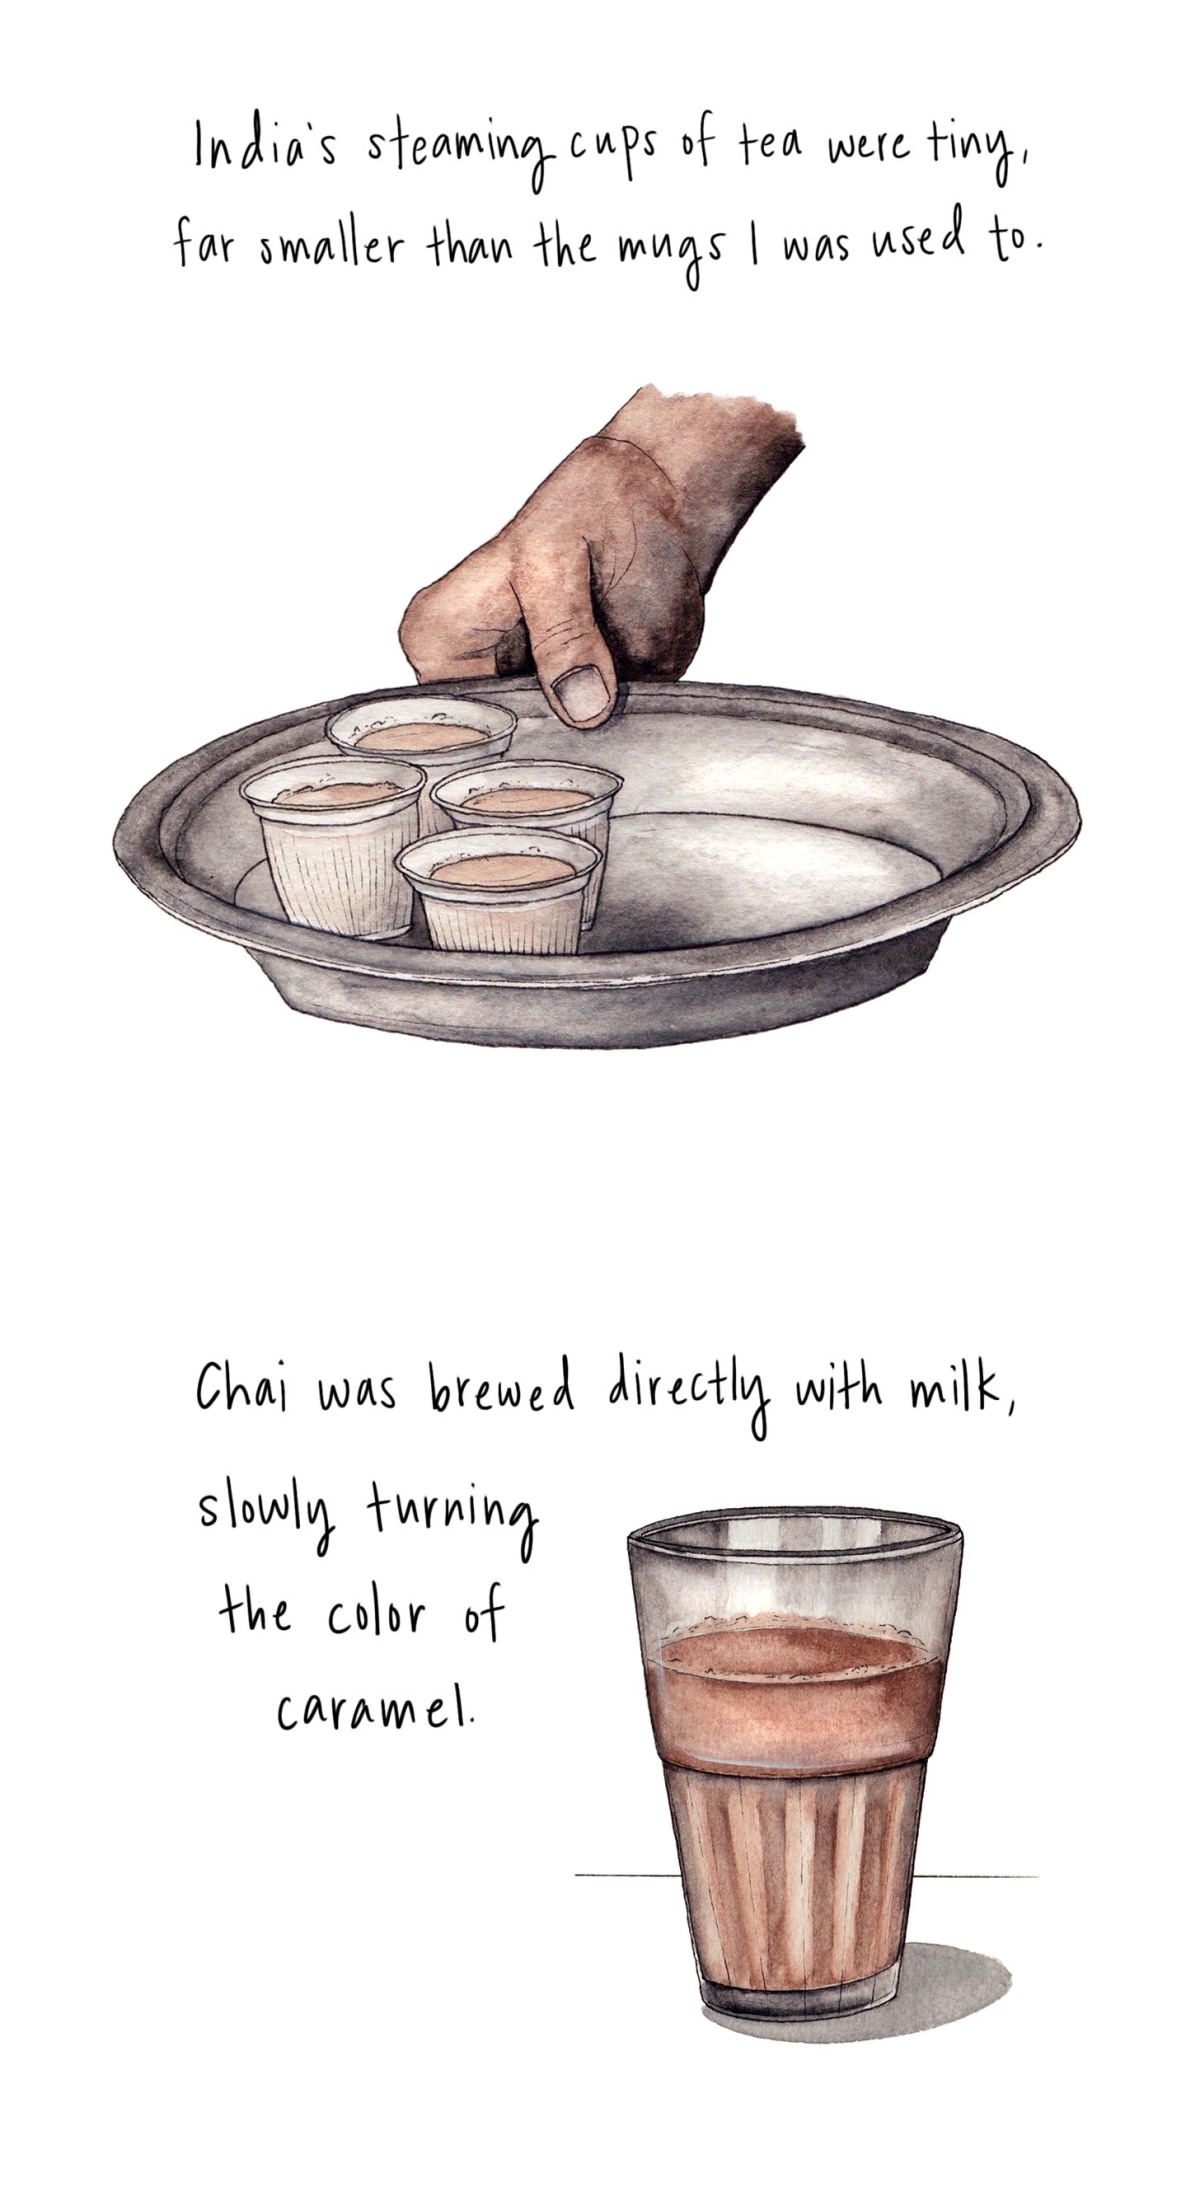 India's steaming cups of tea were tiny, far smaller than the mugs I was used to. Chai was brewed directly with milk, slowly turning the color of caramel.